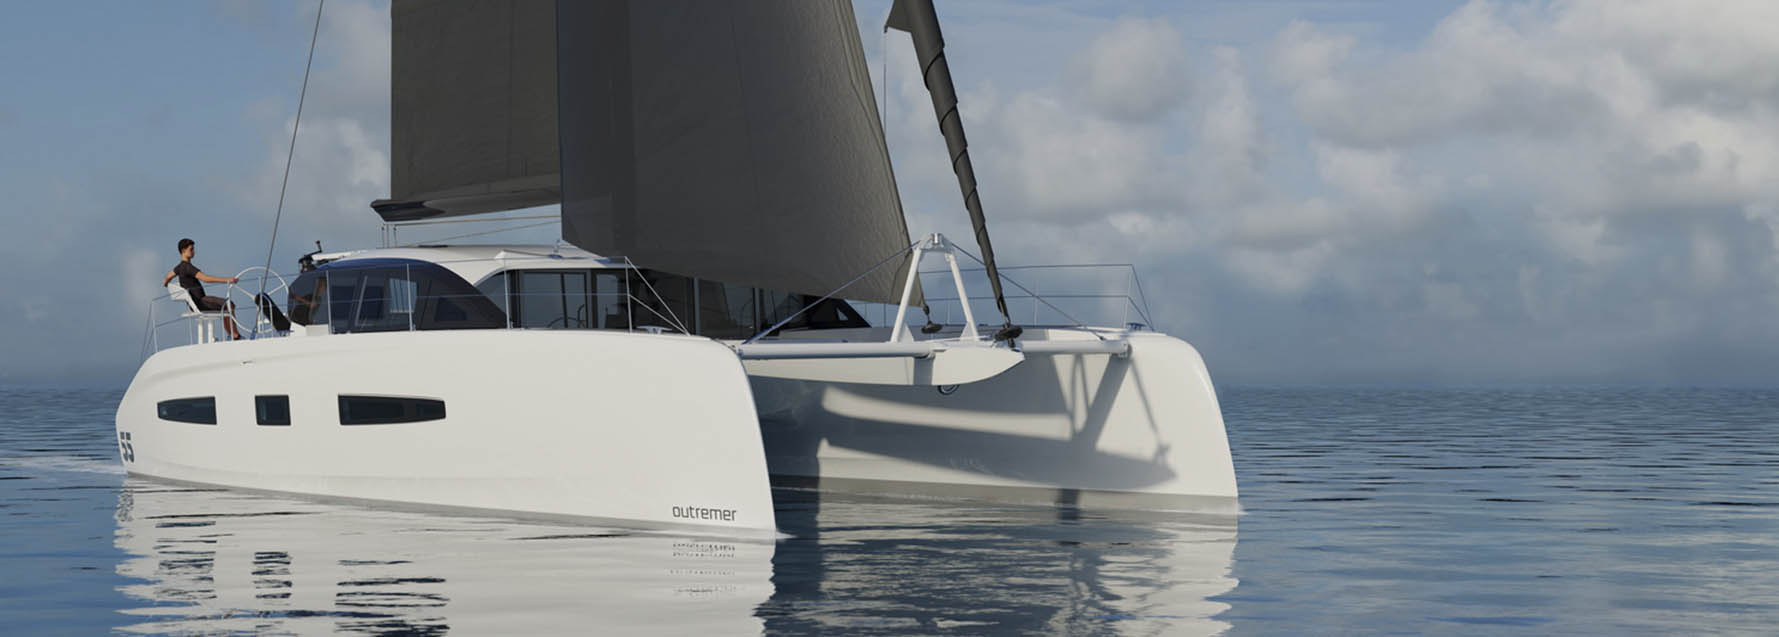 new-outremer55jpg